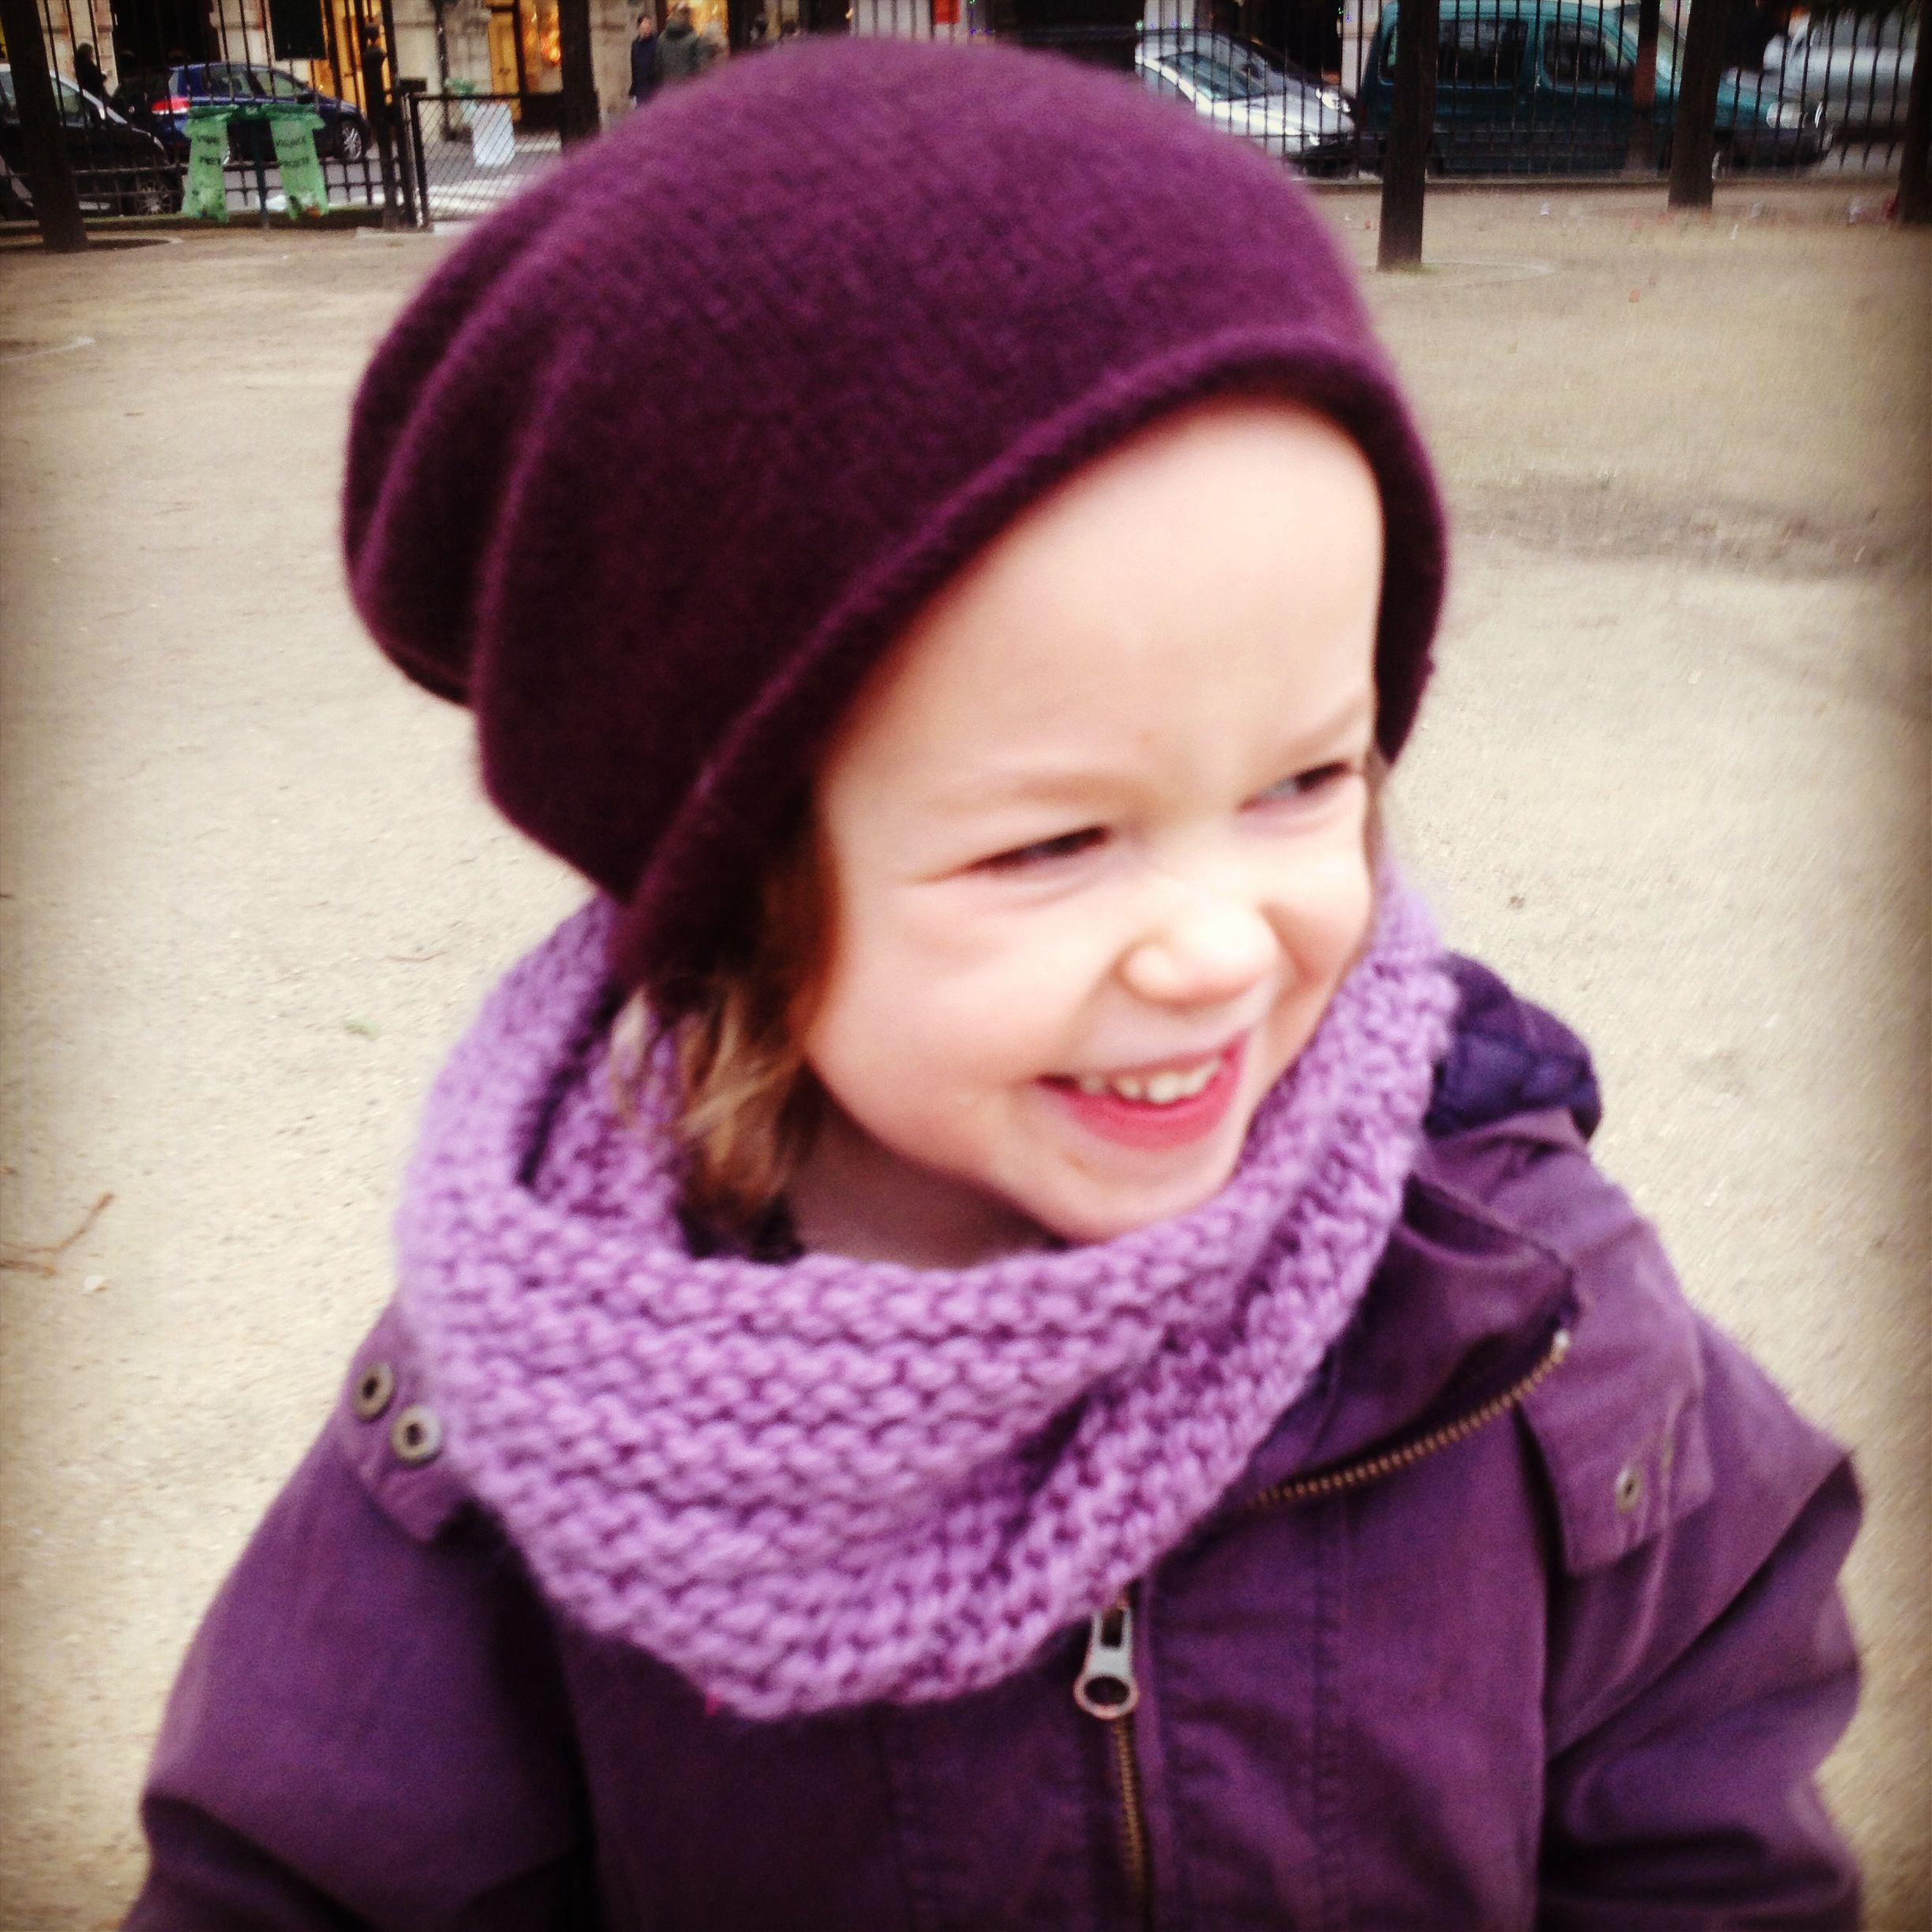 Snood Pattern Knit : How to knit a snood! Babyccino Kids: Daily tips, Childrens products, Cra...